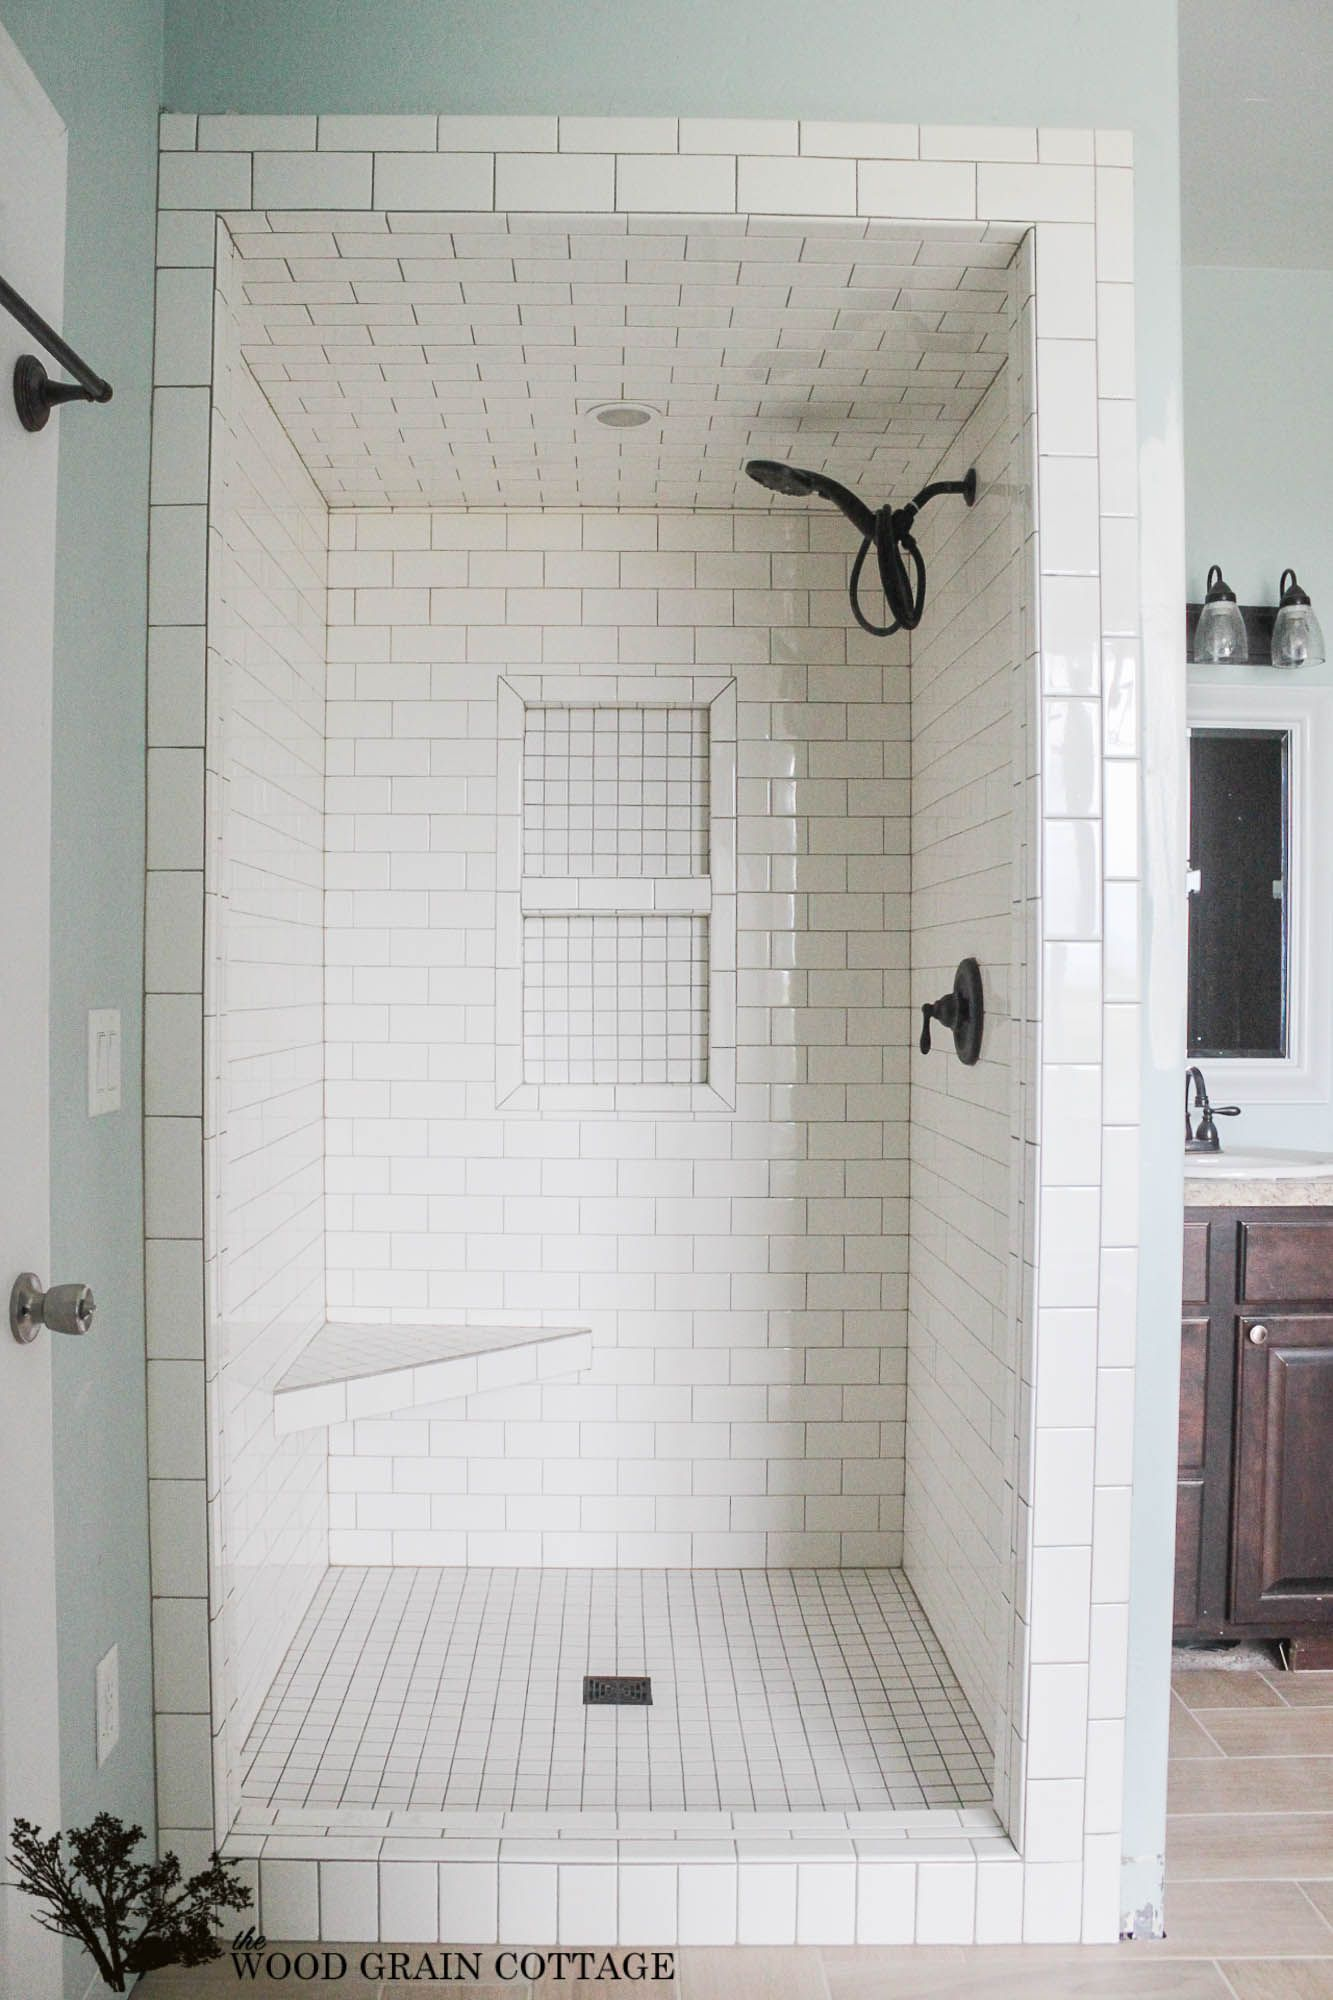 Small Shower Tile Ideas Walk In Plans And Specs Corner Stalls For Bathrooms With Bench Seat Doorless Designs